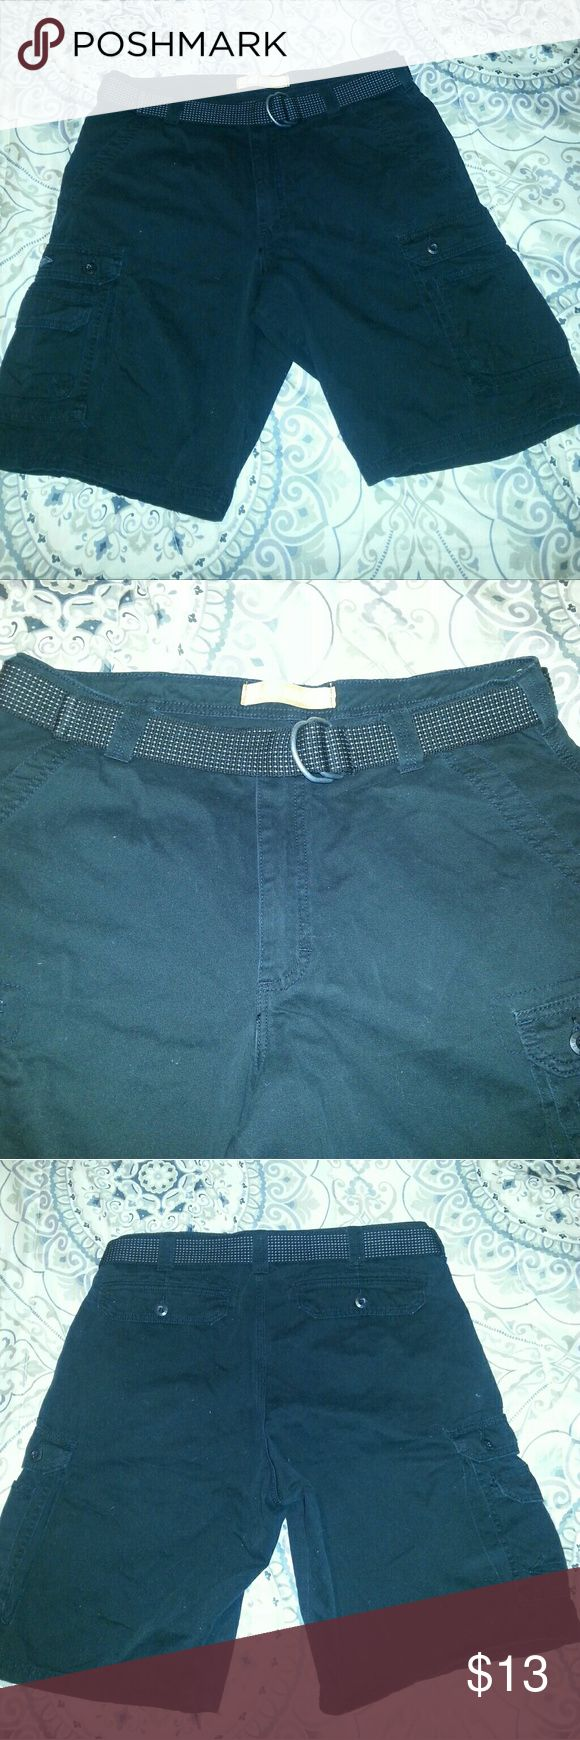 Men's Lee Dungaree shorts Men's black Lee cargo shorts size 36, only used once and in perfect condition! Lee Shorts Cargo